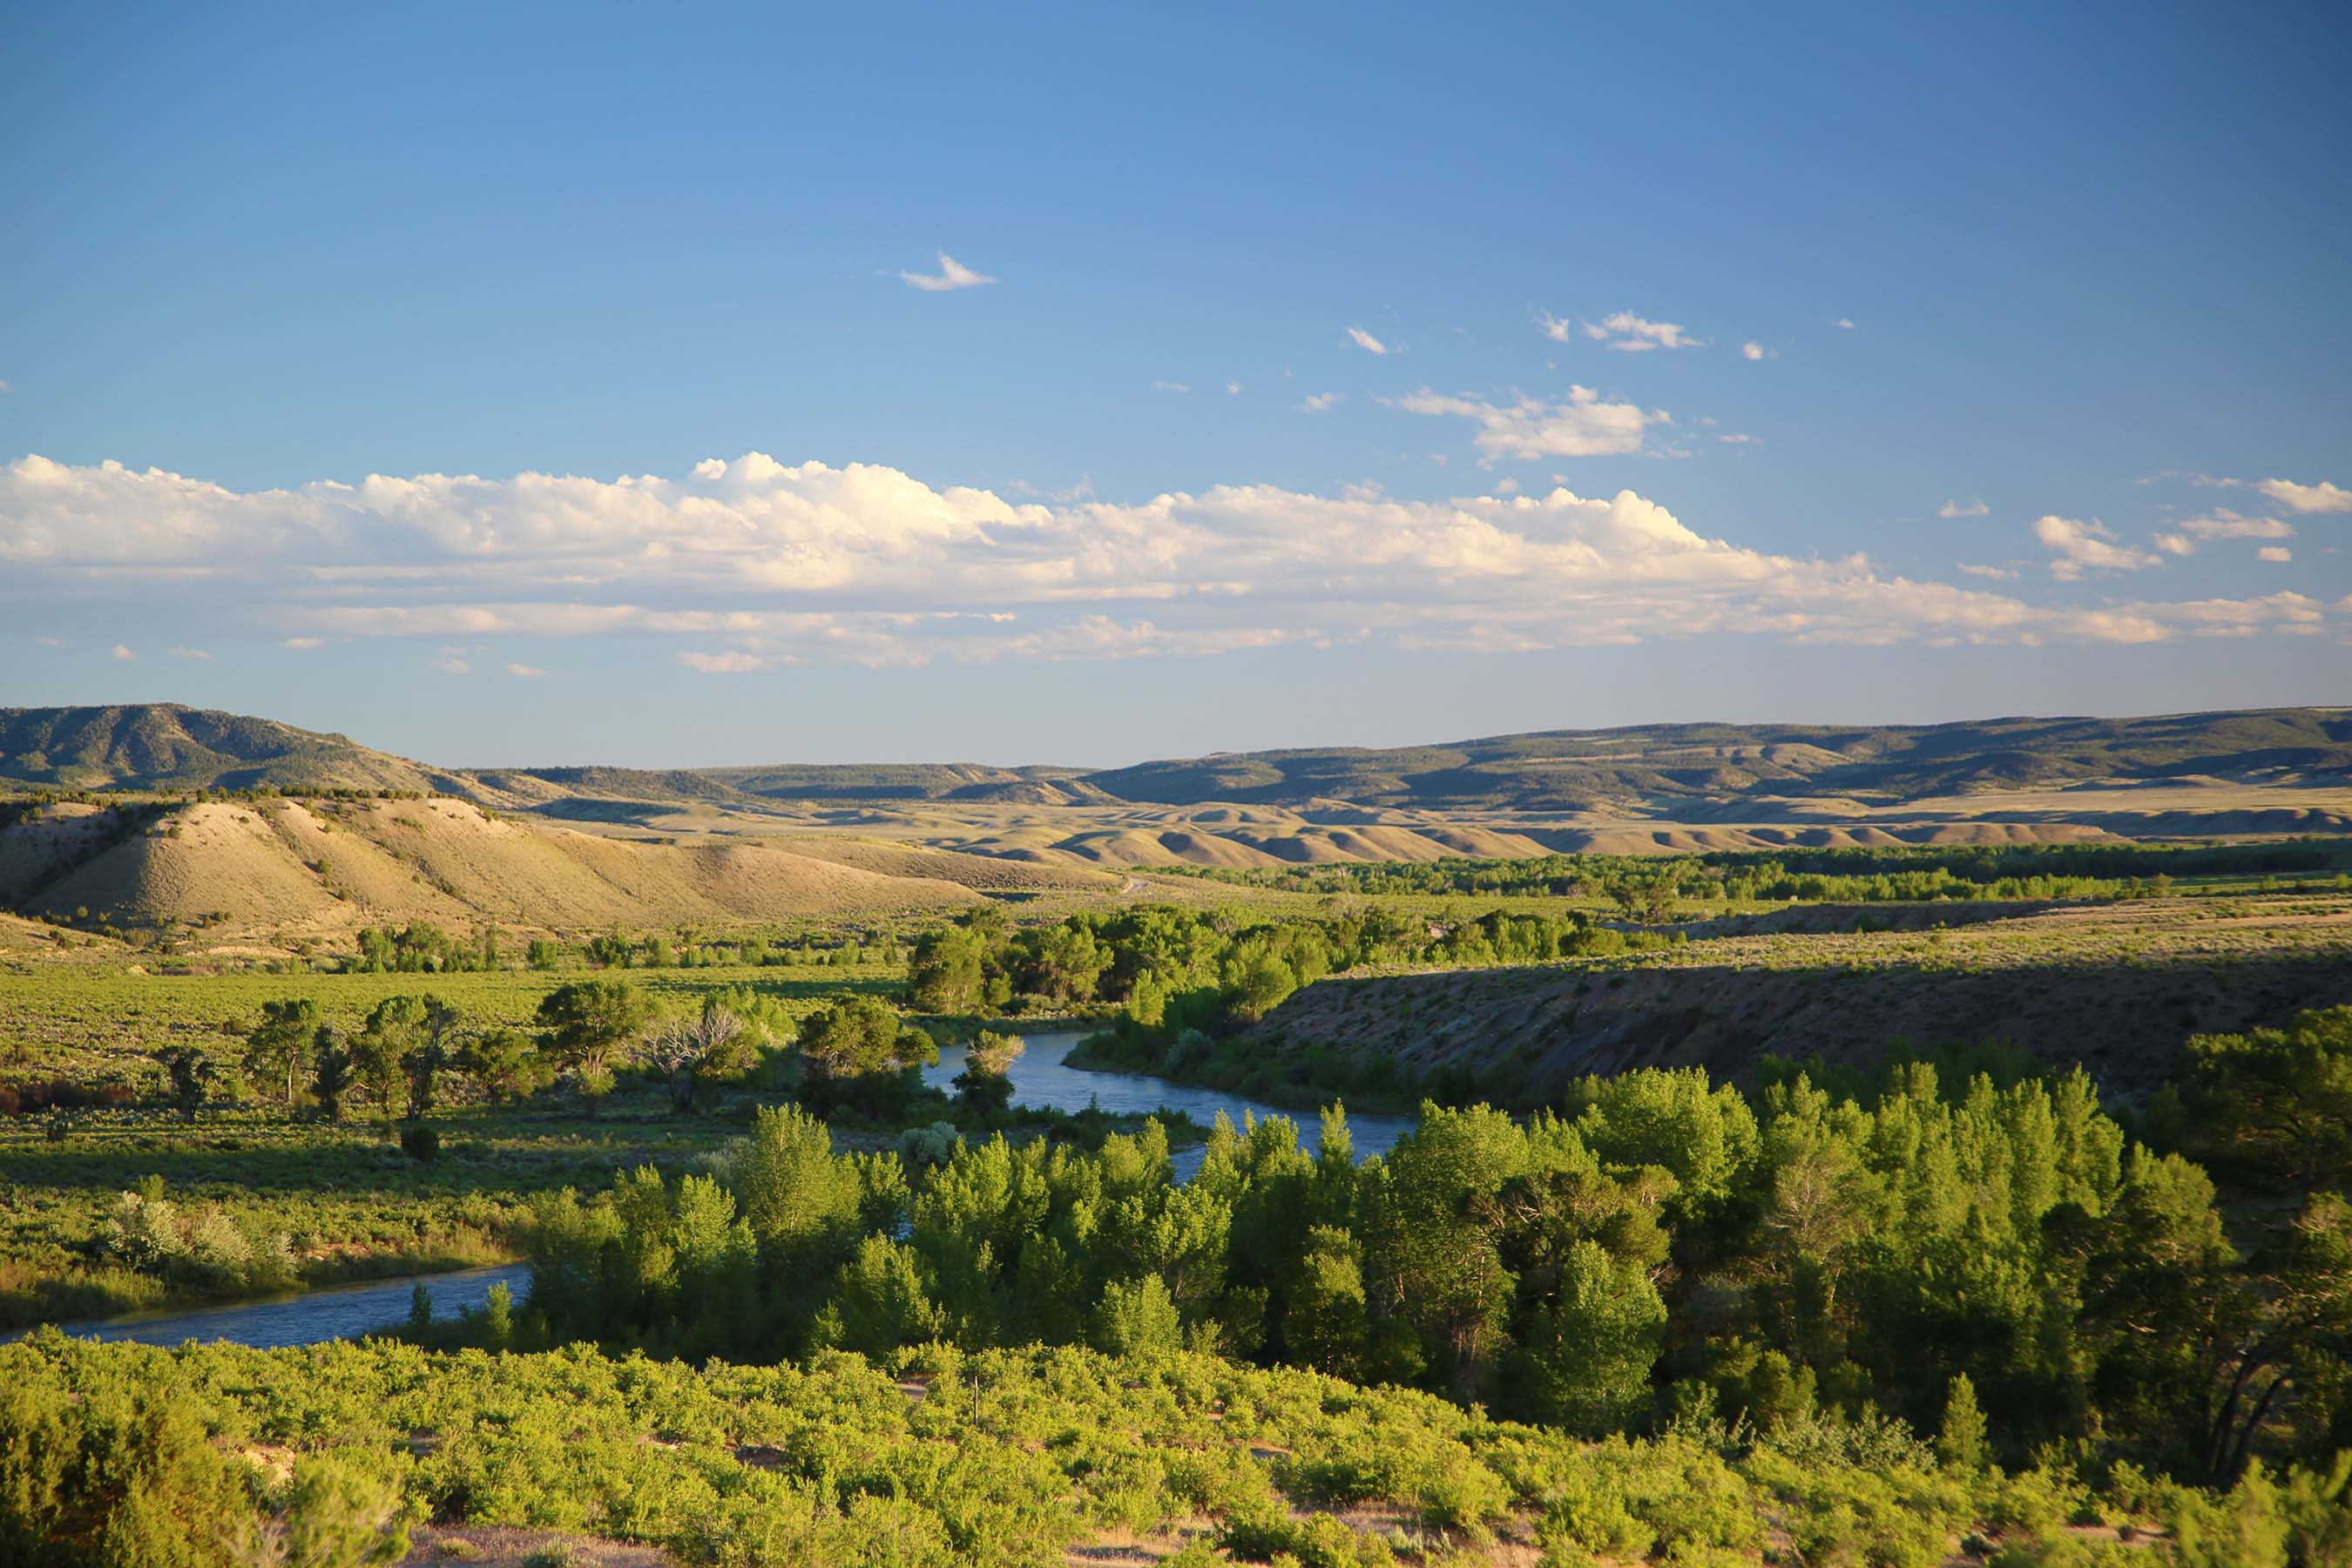 Spanning four counties in Northwestern Colorado near Steamboat Springs, the Ranch is one of the most diverse ranches on the market in the United States and features 20 miles of river frontage.